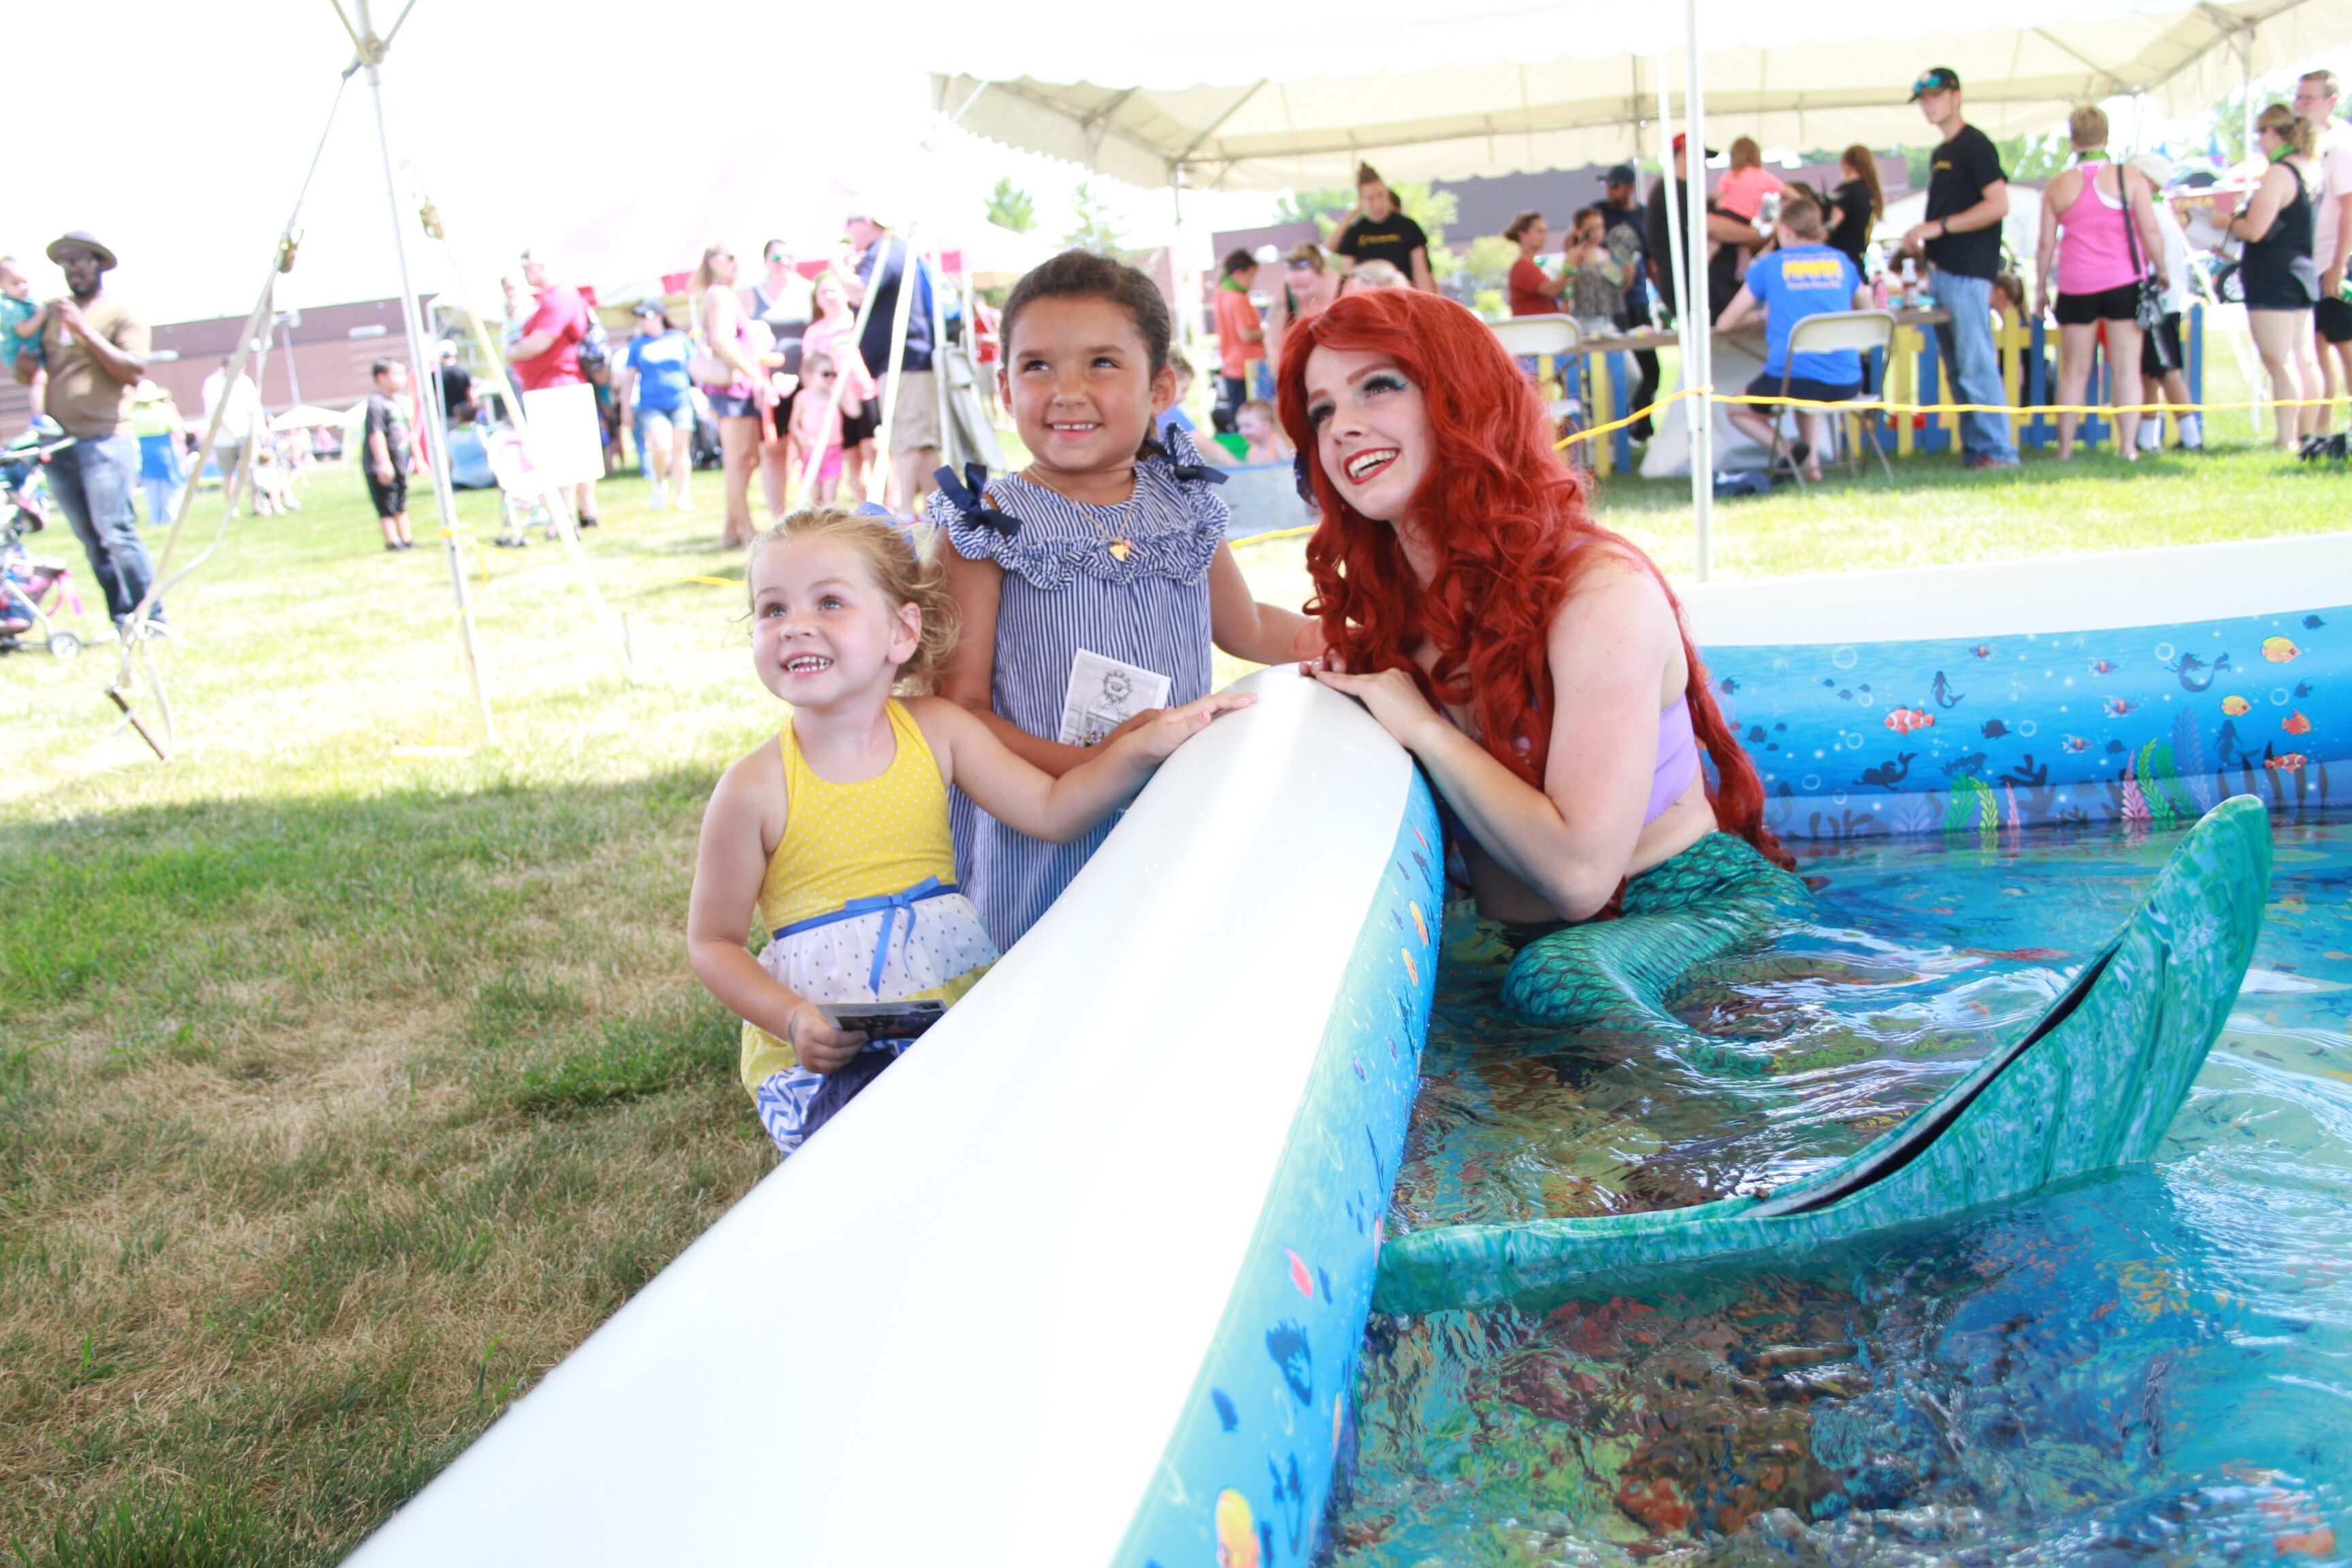 Two little girls pose for a picture next to a worker dressed up as Ariel from The Little Mermaid in a swimming pool.